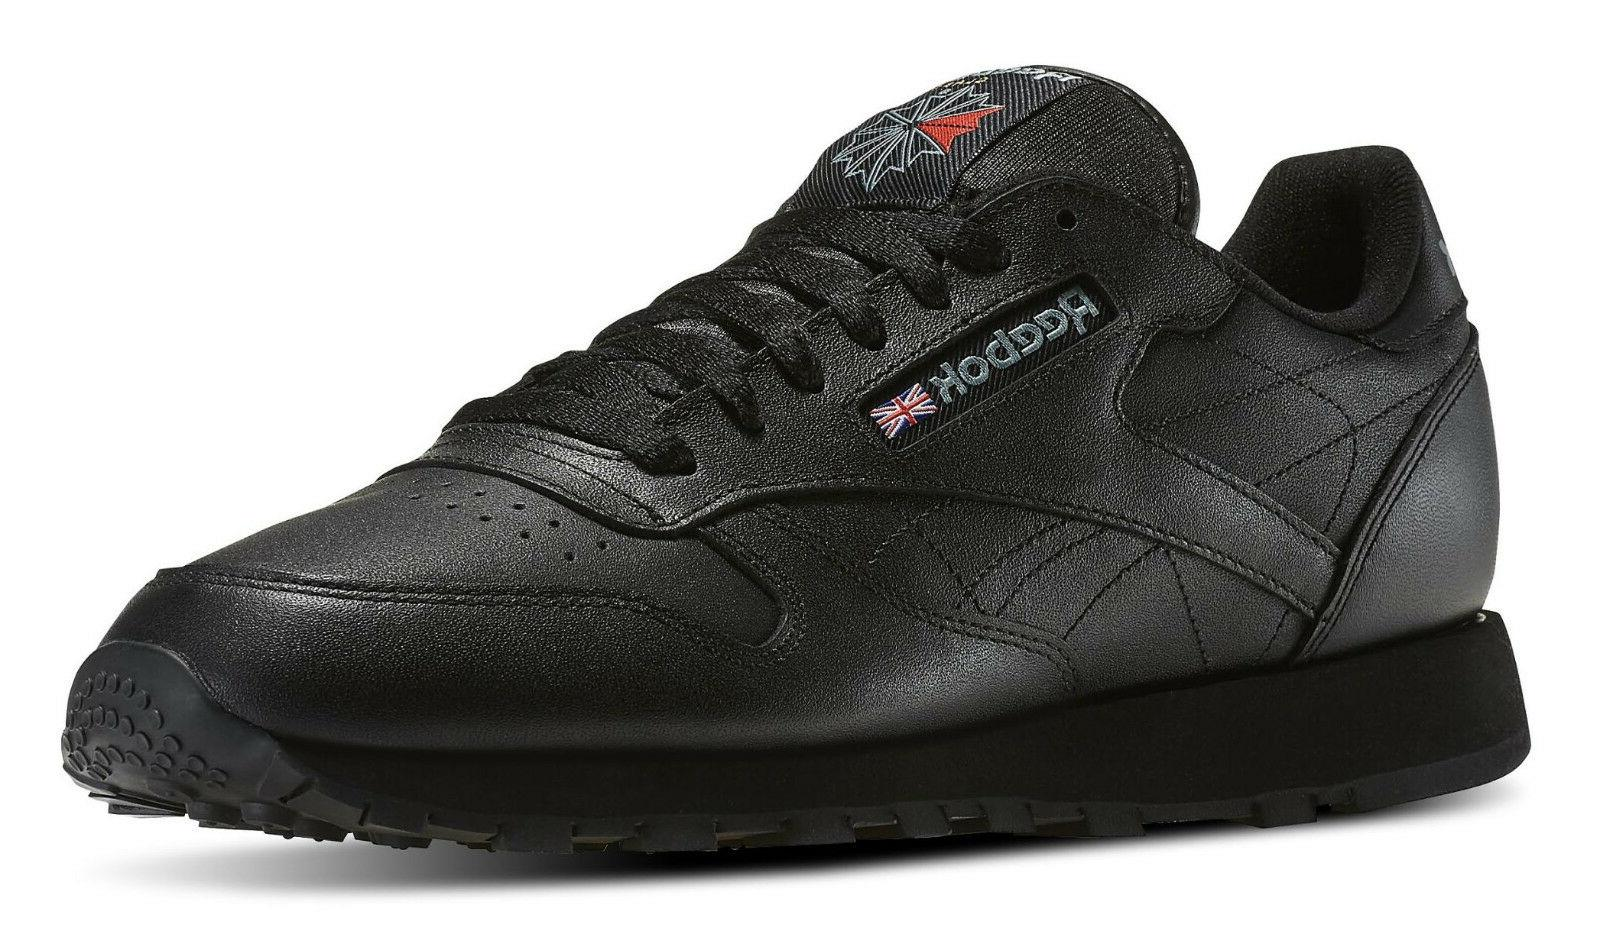 Reebok Classic Leather Black Mens Running Tennis Shoes Item